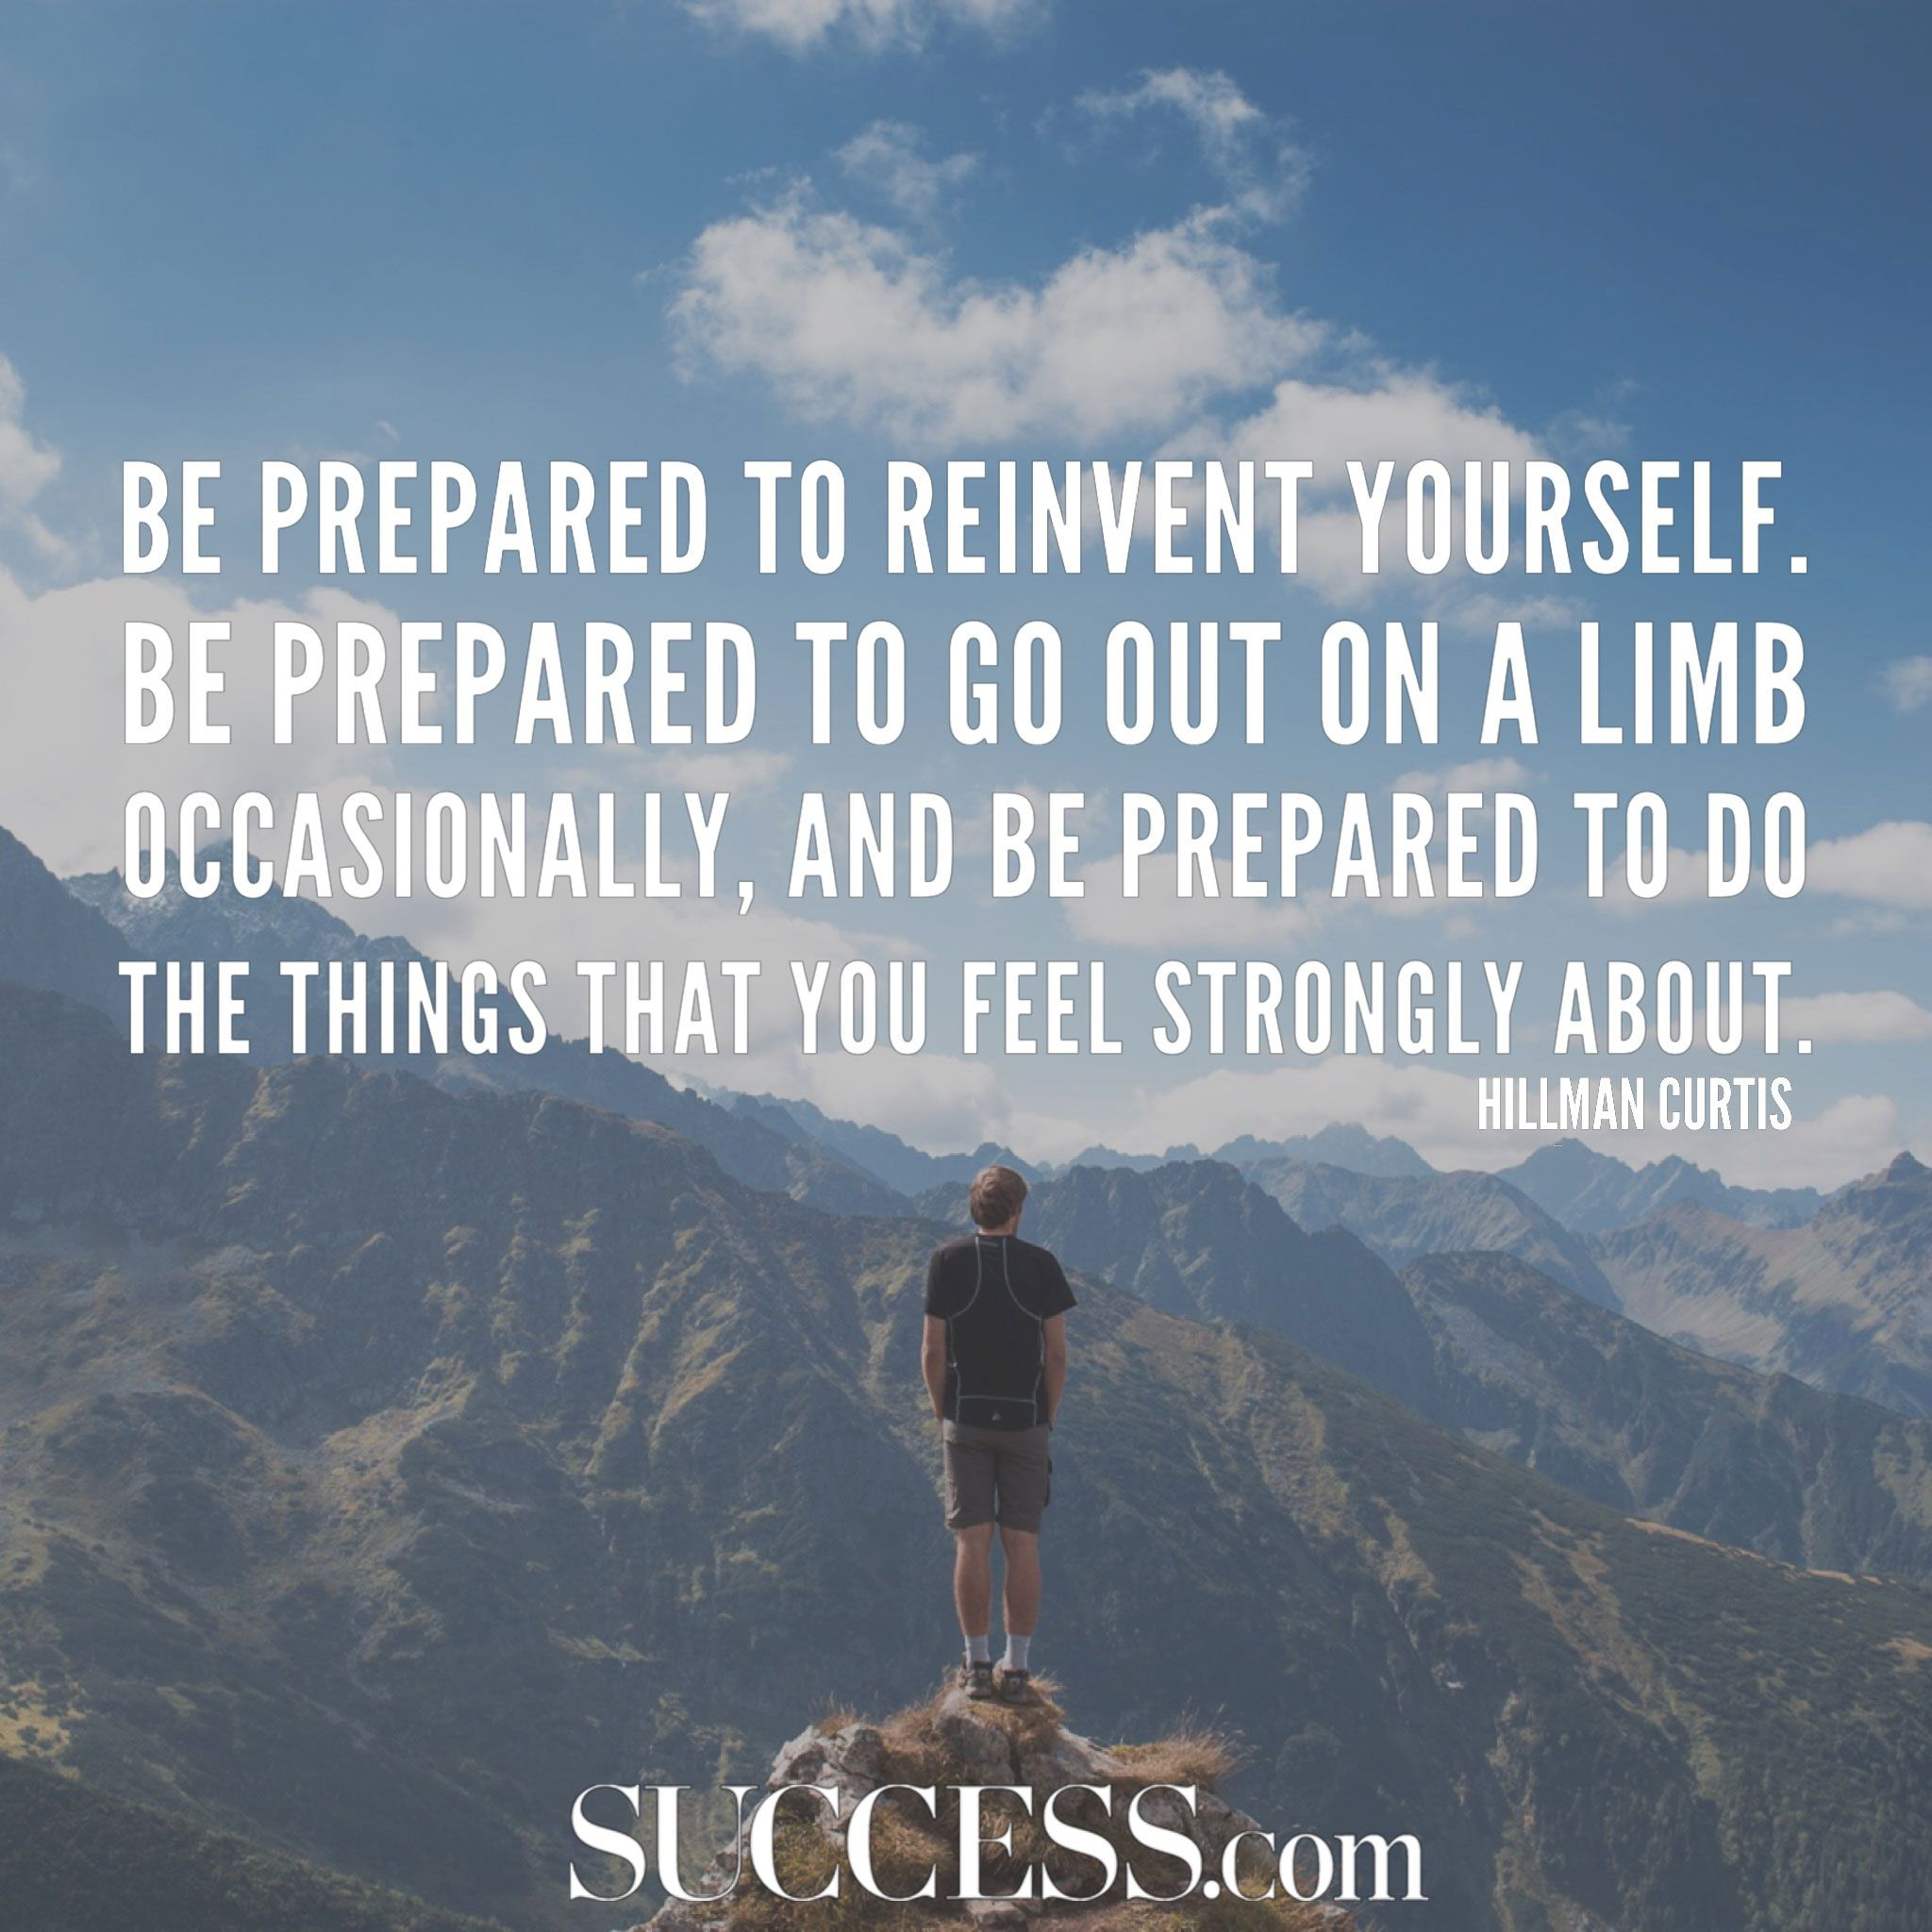 17 Inspiring Quotes About Reinventing Yourself | adventurous